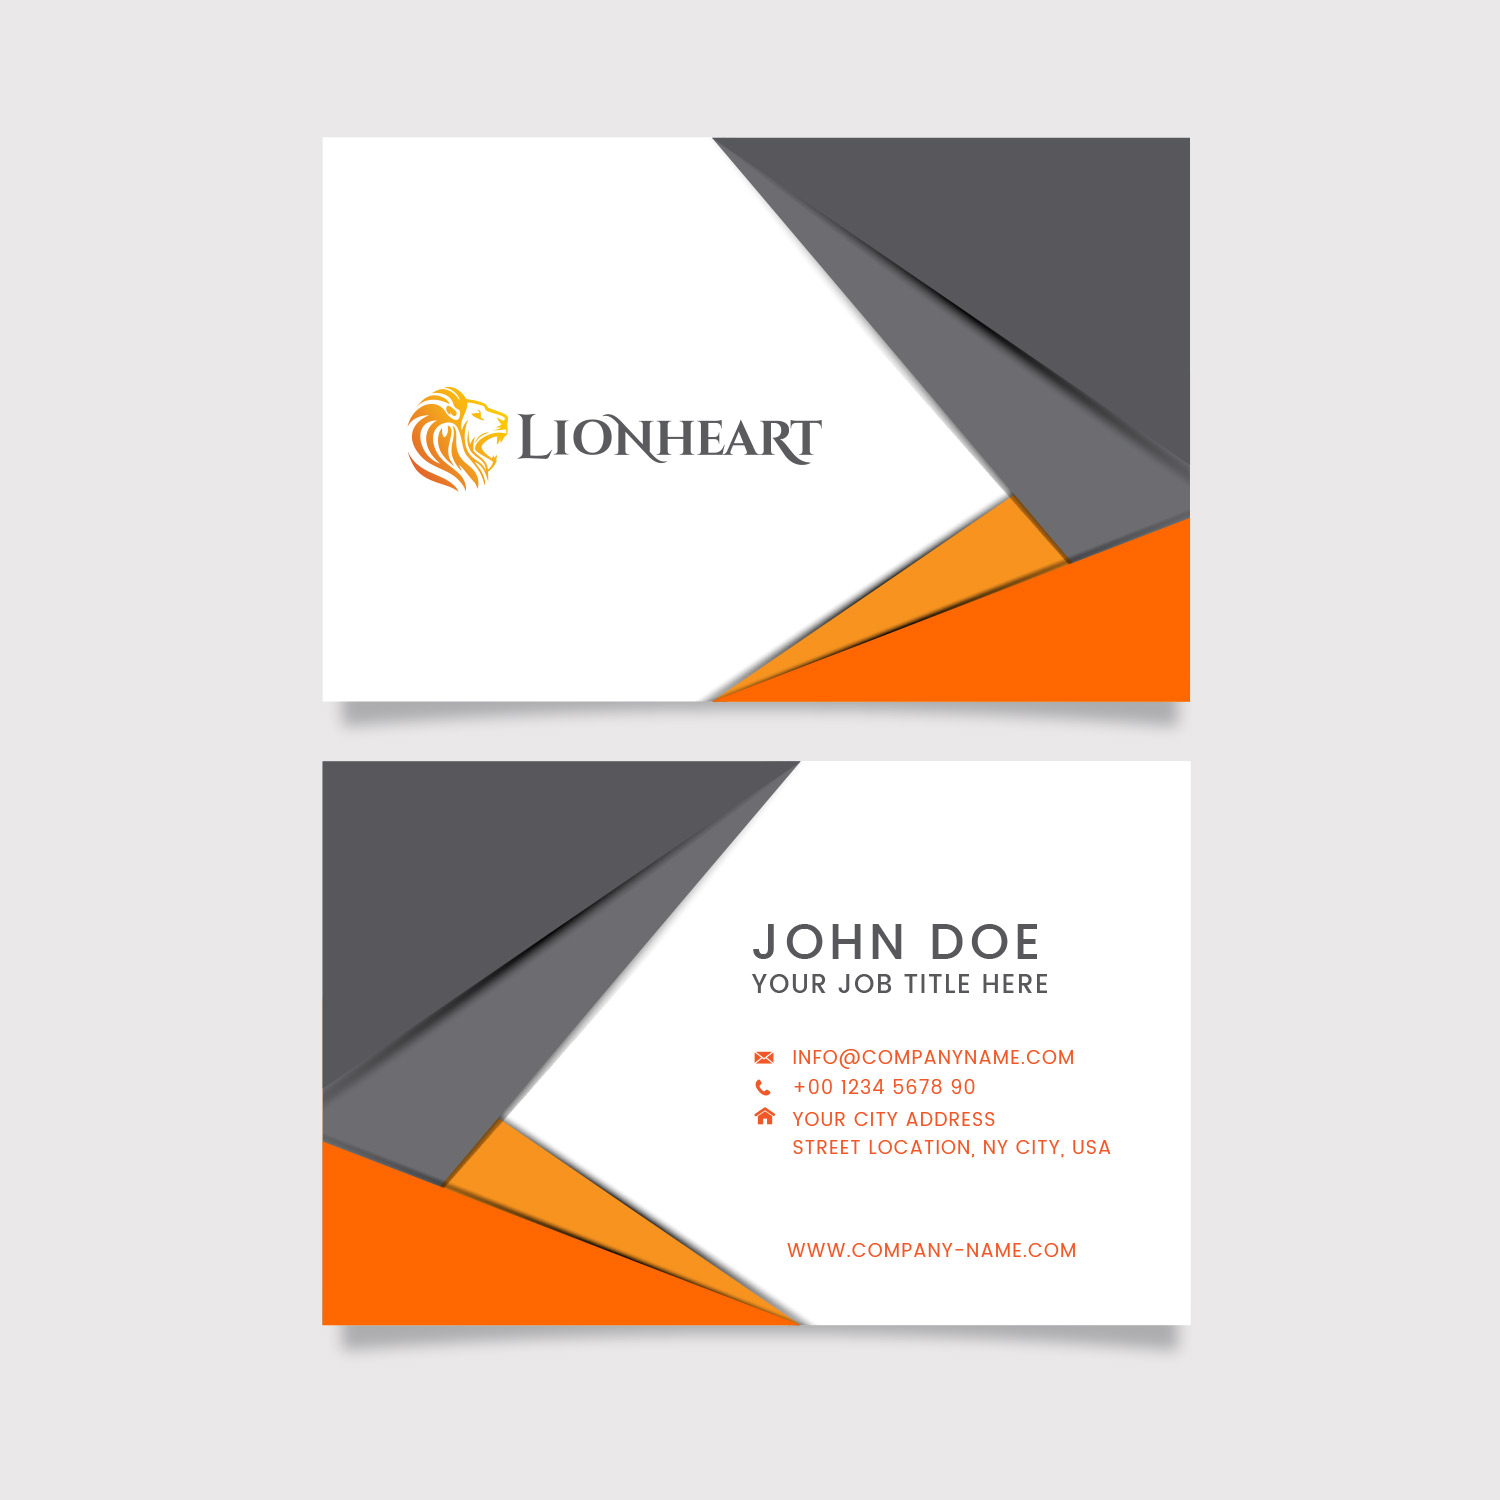 Lionheart Branded Cards